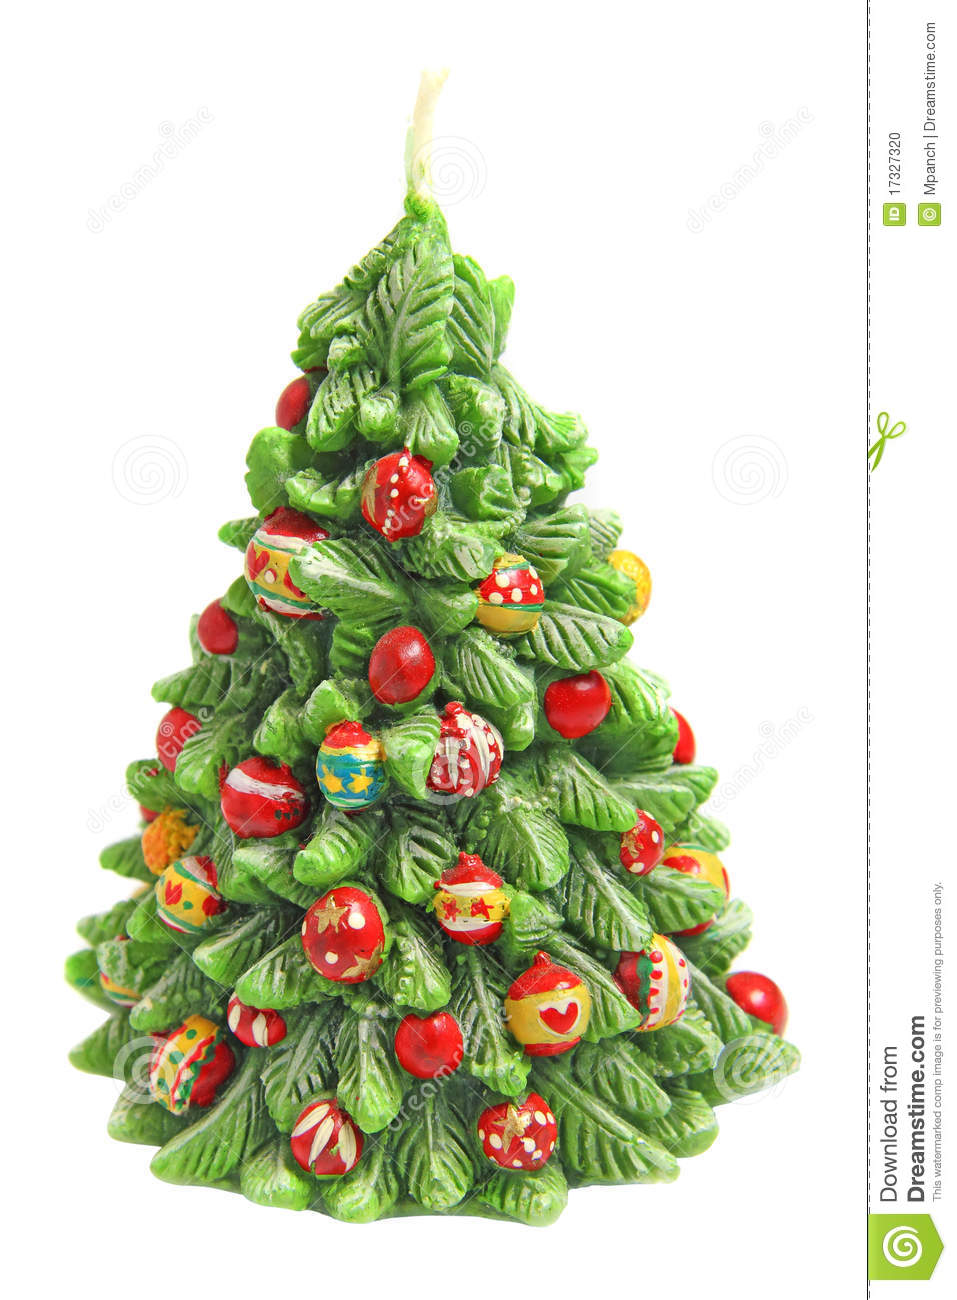 Candle In Shape Of Christmas Tree Stock Photo - Image ...